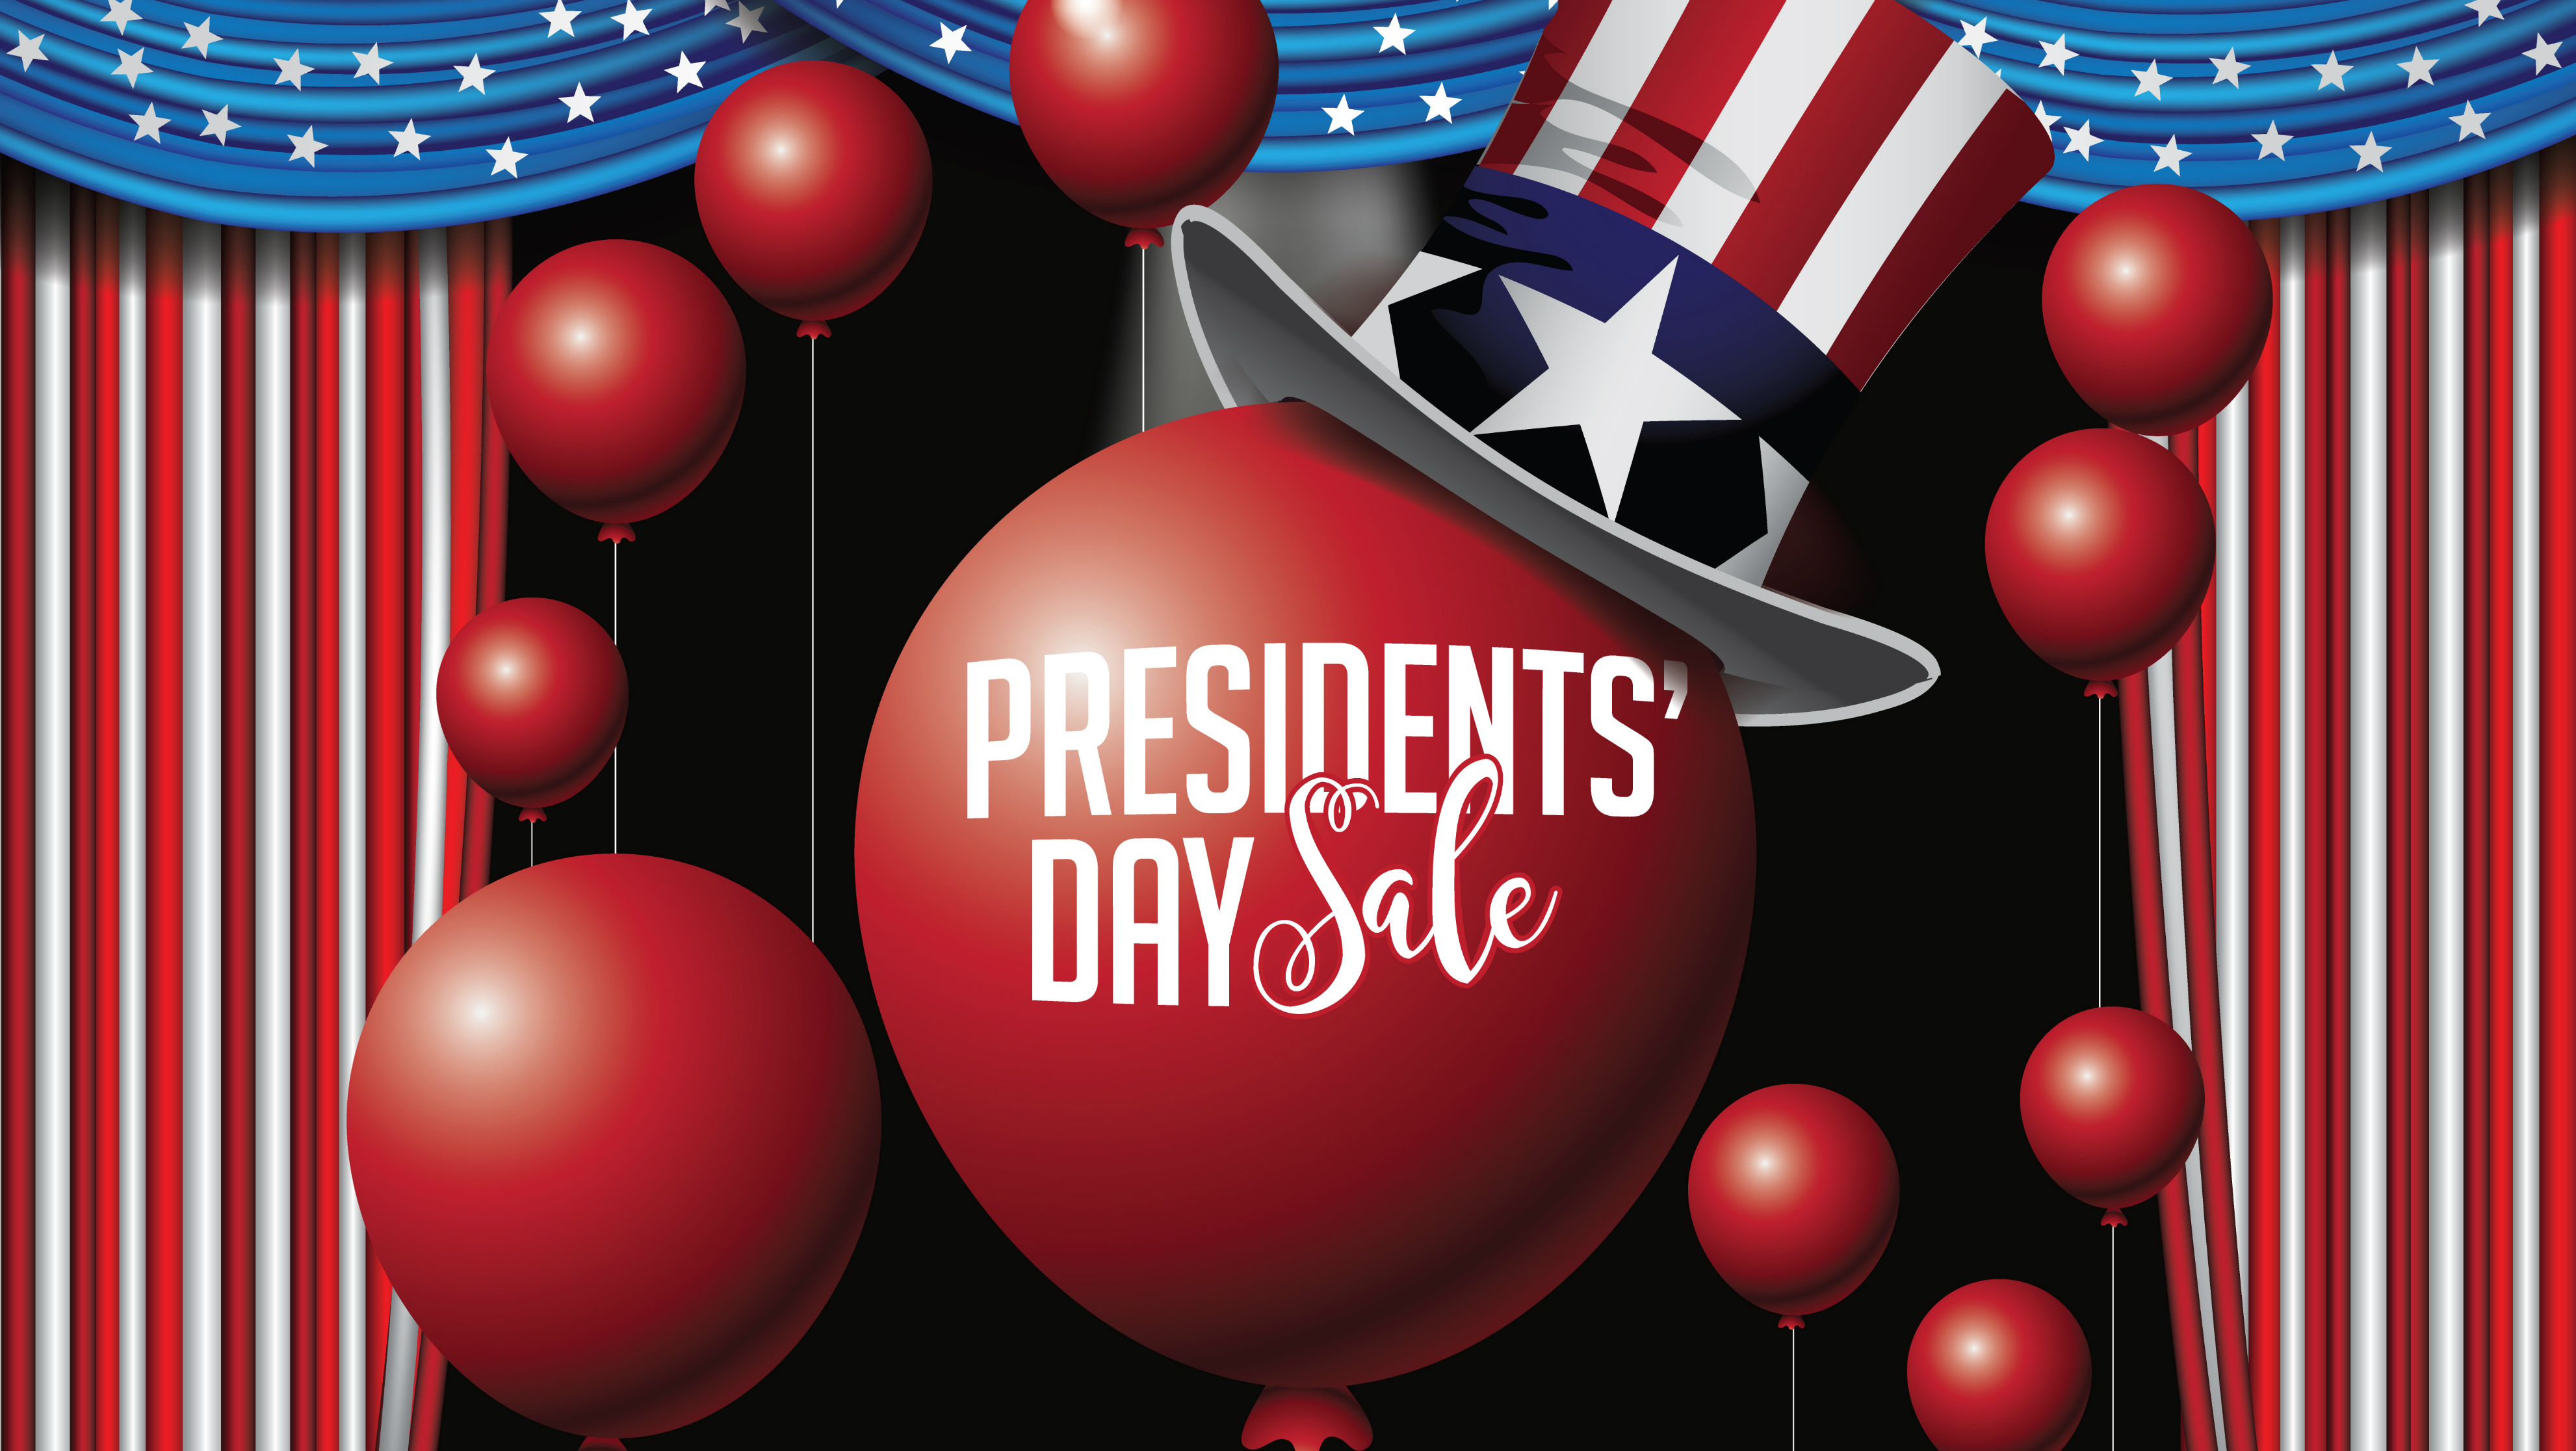 President's Day offering good deals-best deals and prices